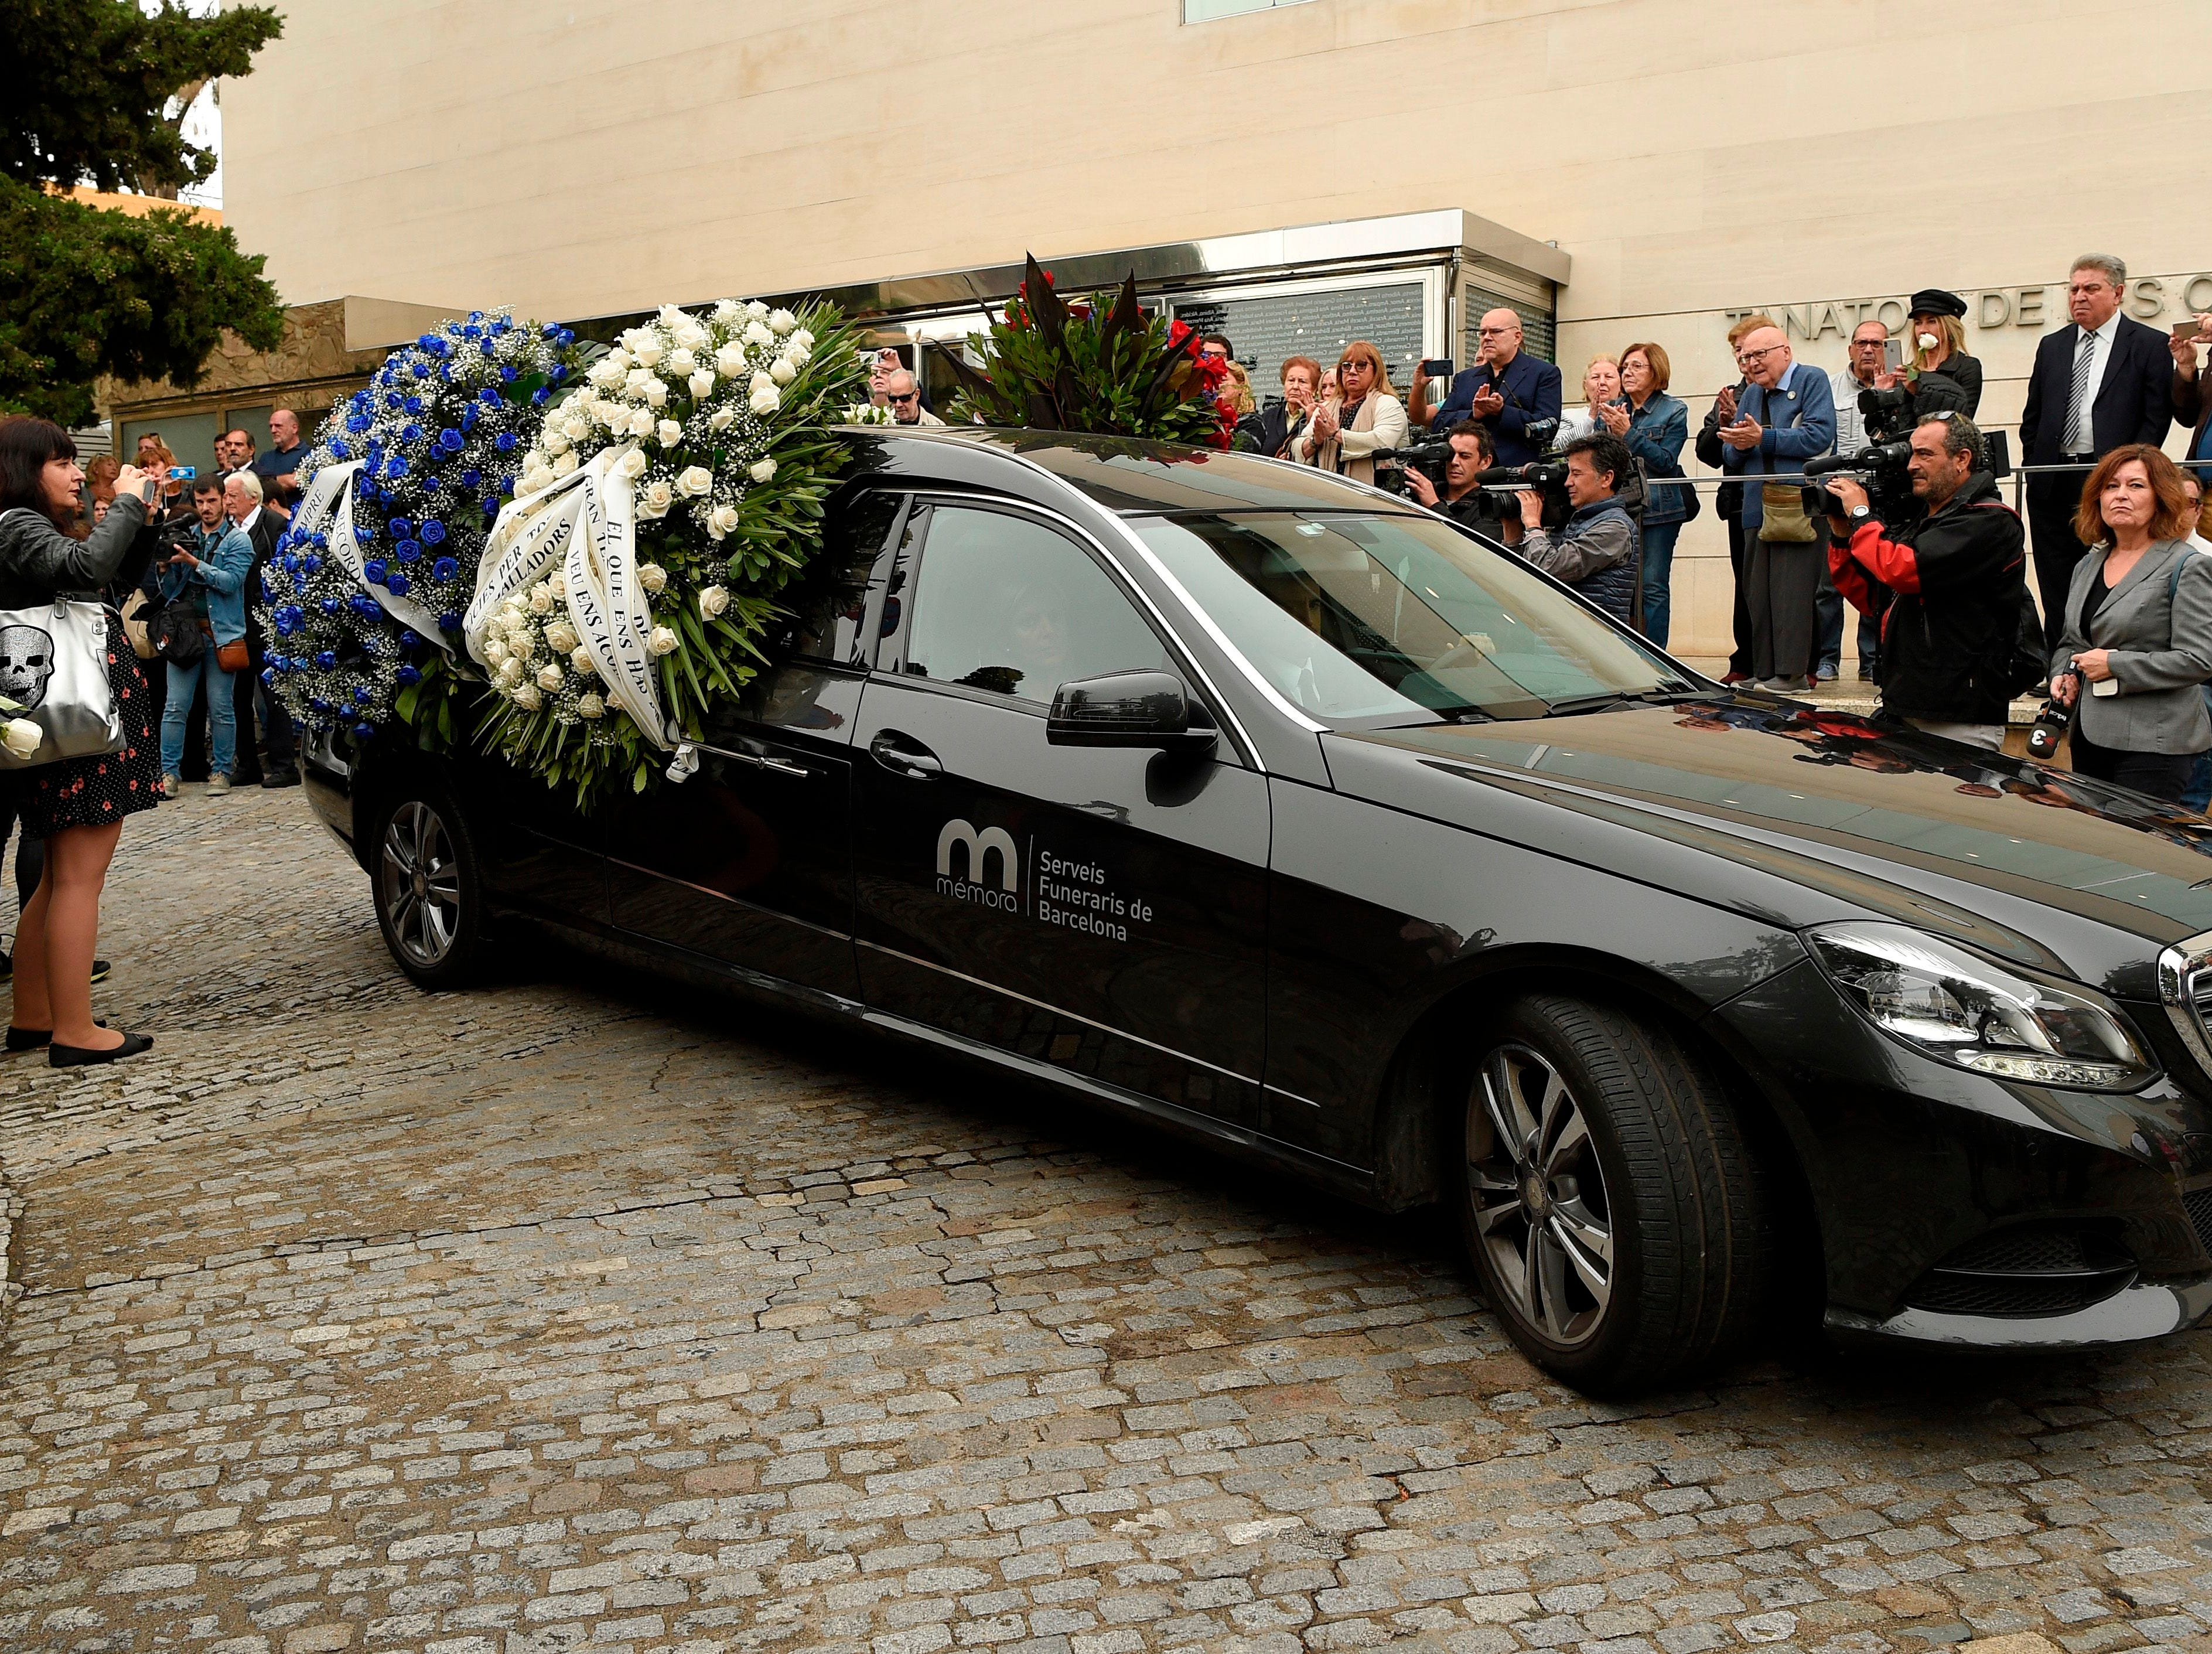 A hearse carries the remains of Spanish opera singer Montserrat Caballe, during her funeral in Barcelona on Oct. 8, 2018.